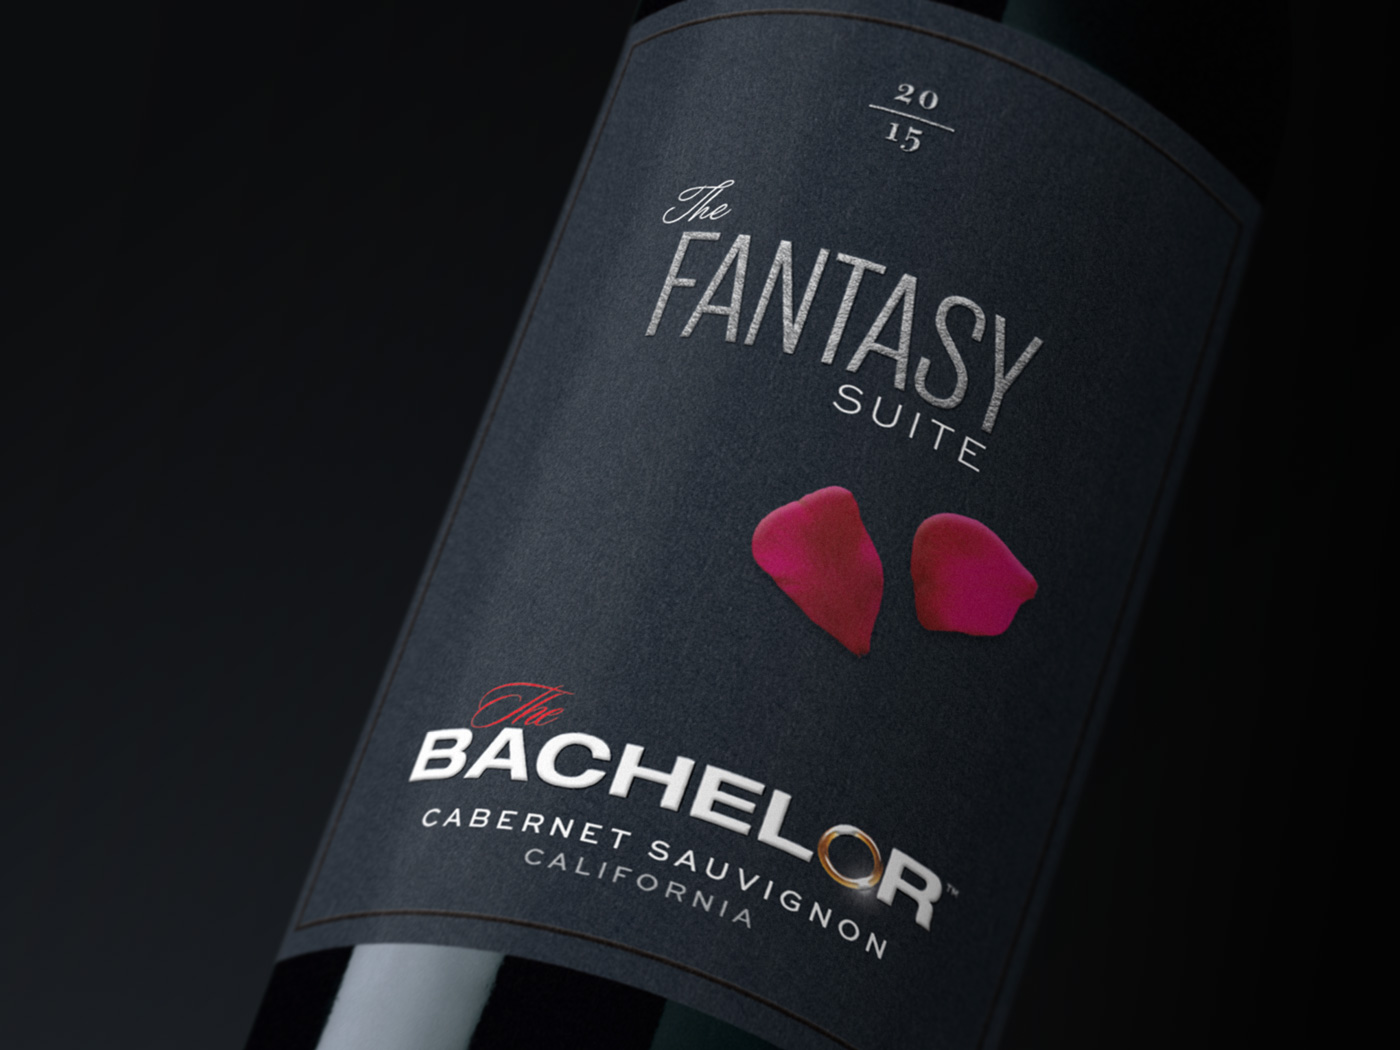 Bachelor Wines - The Fantasy Suite Closeup